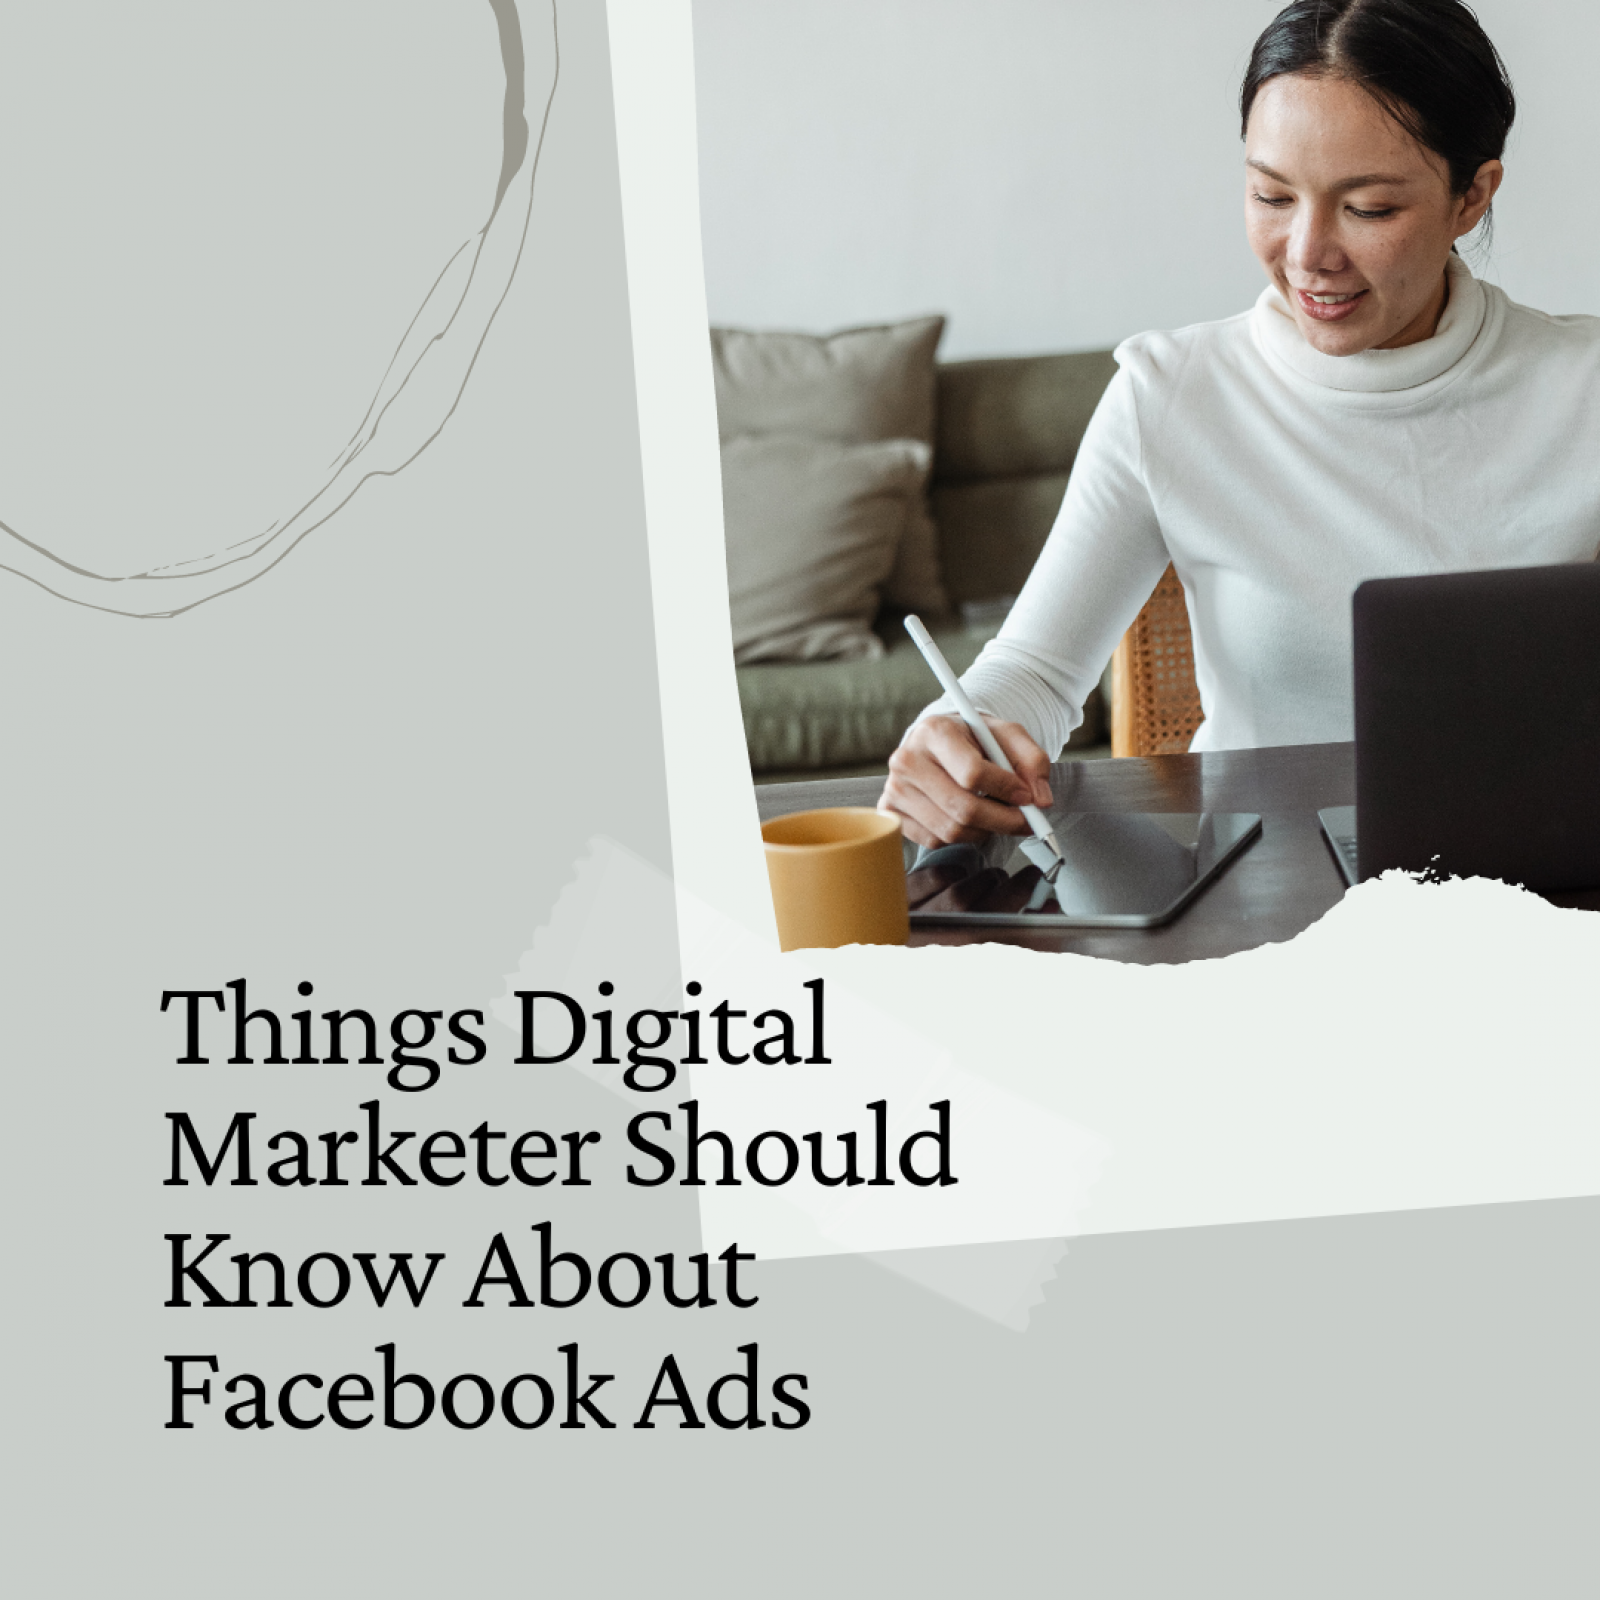 digital marketer should know about facebook marketing